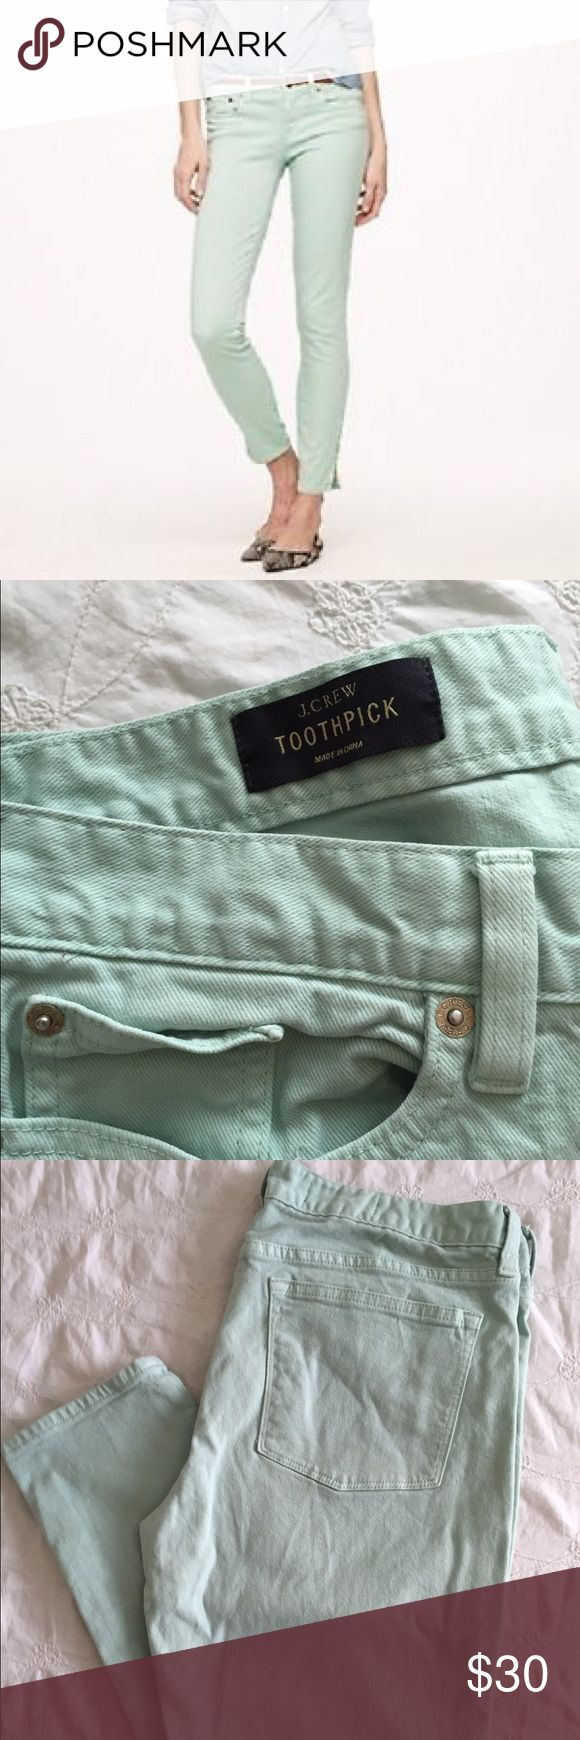 J. Crew Toothpick Mint Jeans I wore them several times but they're in great condition. This style is a few years old, so the tag says they're a 32 but they fit more like a 29. J. Crew Jeans Skinny